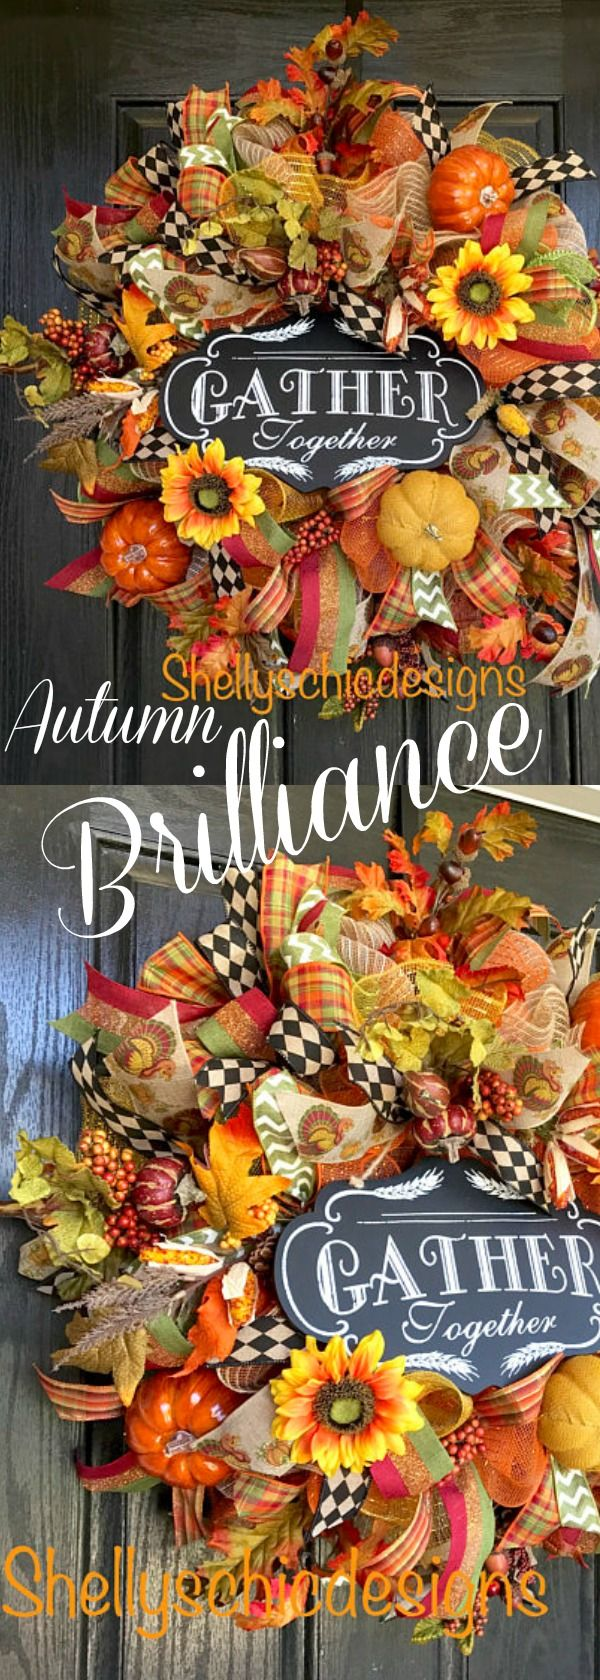 This Fall Deco Mesh Wreath is a great way to great your guests this Fall all through Thanksgiving. It is made with an orange, burlap,green, and yellow golden mesh. There are multiple fall ribbons throughout including sheer plaid, and turkey with pumpkins. Check out Shelly's Chic Designs for more beautiful creations! (contains affiliate link)